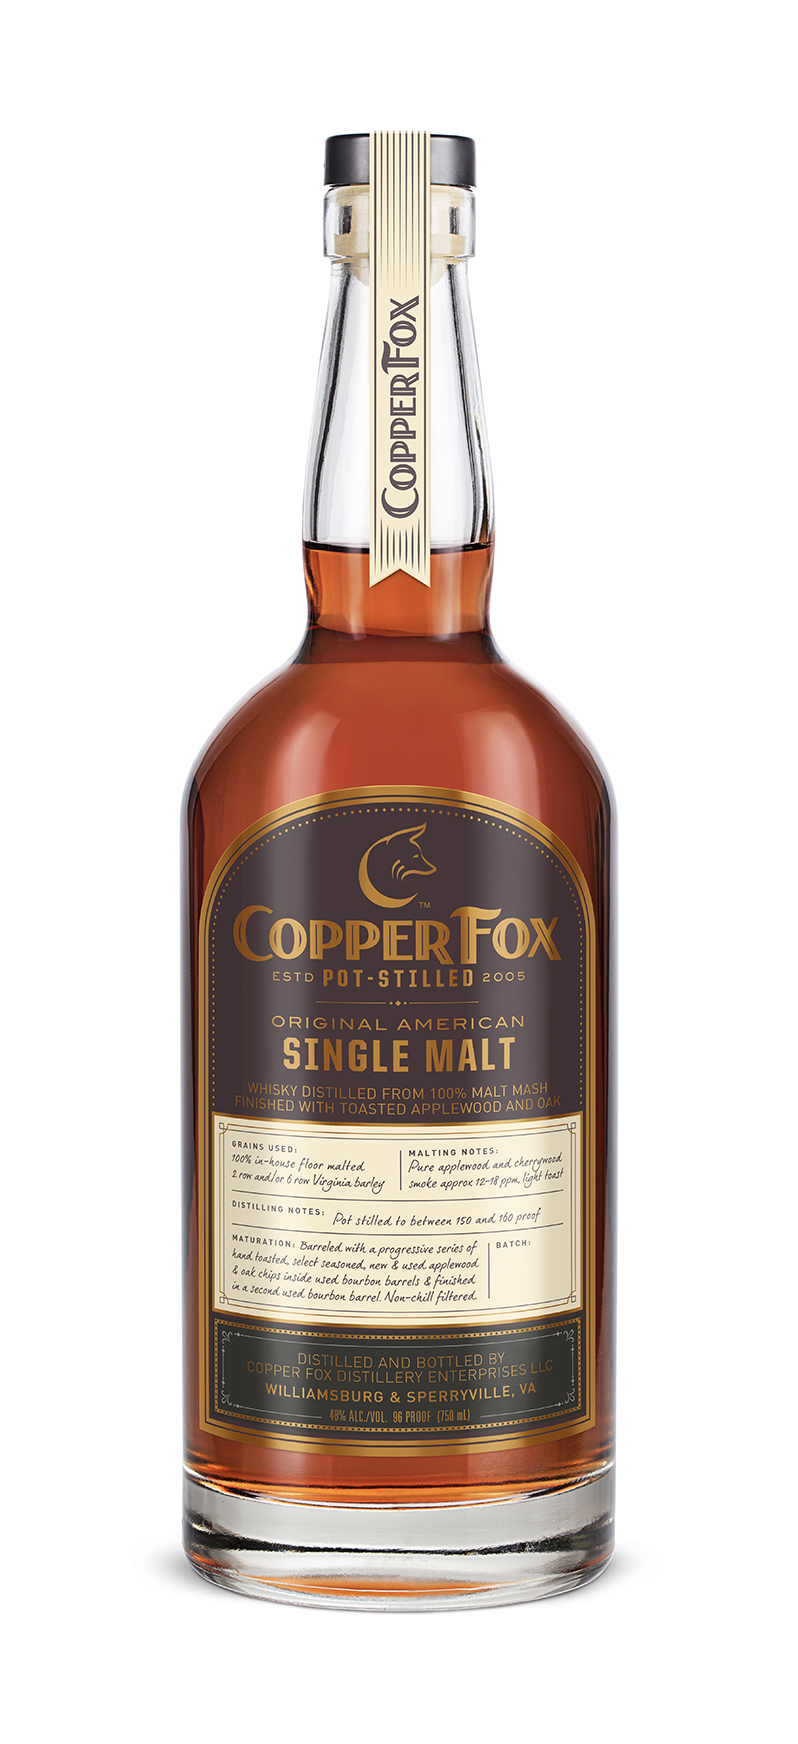 "copper fox American Single Malt - ""Rich amber copper color, intriguing aromas and flavors of suede, olive tapenade, honey, dried fruit chutney and clay with a silky, dry-yet-fruity, medium-full body, and long, spicy, orange marmalade on rye toast and root beer float-like finish. Distinctively flavorful and a great choice for artisan cocktails or sipping.""A Spirit That Stands AloneCombines the best of the grand tradition of single malt whisky with creative and unique innovations for aging and flavoring that result in a special spirit that has no peer.Copper Fox Distillery is the only distillery in North America to hand malt its own barley, and the only distillery on the planet to use apple and cherry wood smoke to flavor the malted barley. Our single batch copper potstill produces one barrel at a time and the spirit is non-chill filtered to preserve the complete flavor and essence of the barley grain.Aged in used bourbon barrels for 14-18 months and bottled at 96 proof. A decidedly young, rich, flavorful whisky that has no peer.Back to Gallery Next ›"